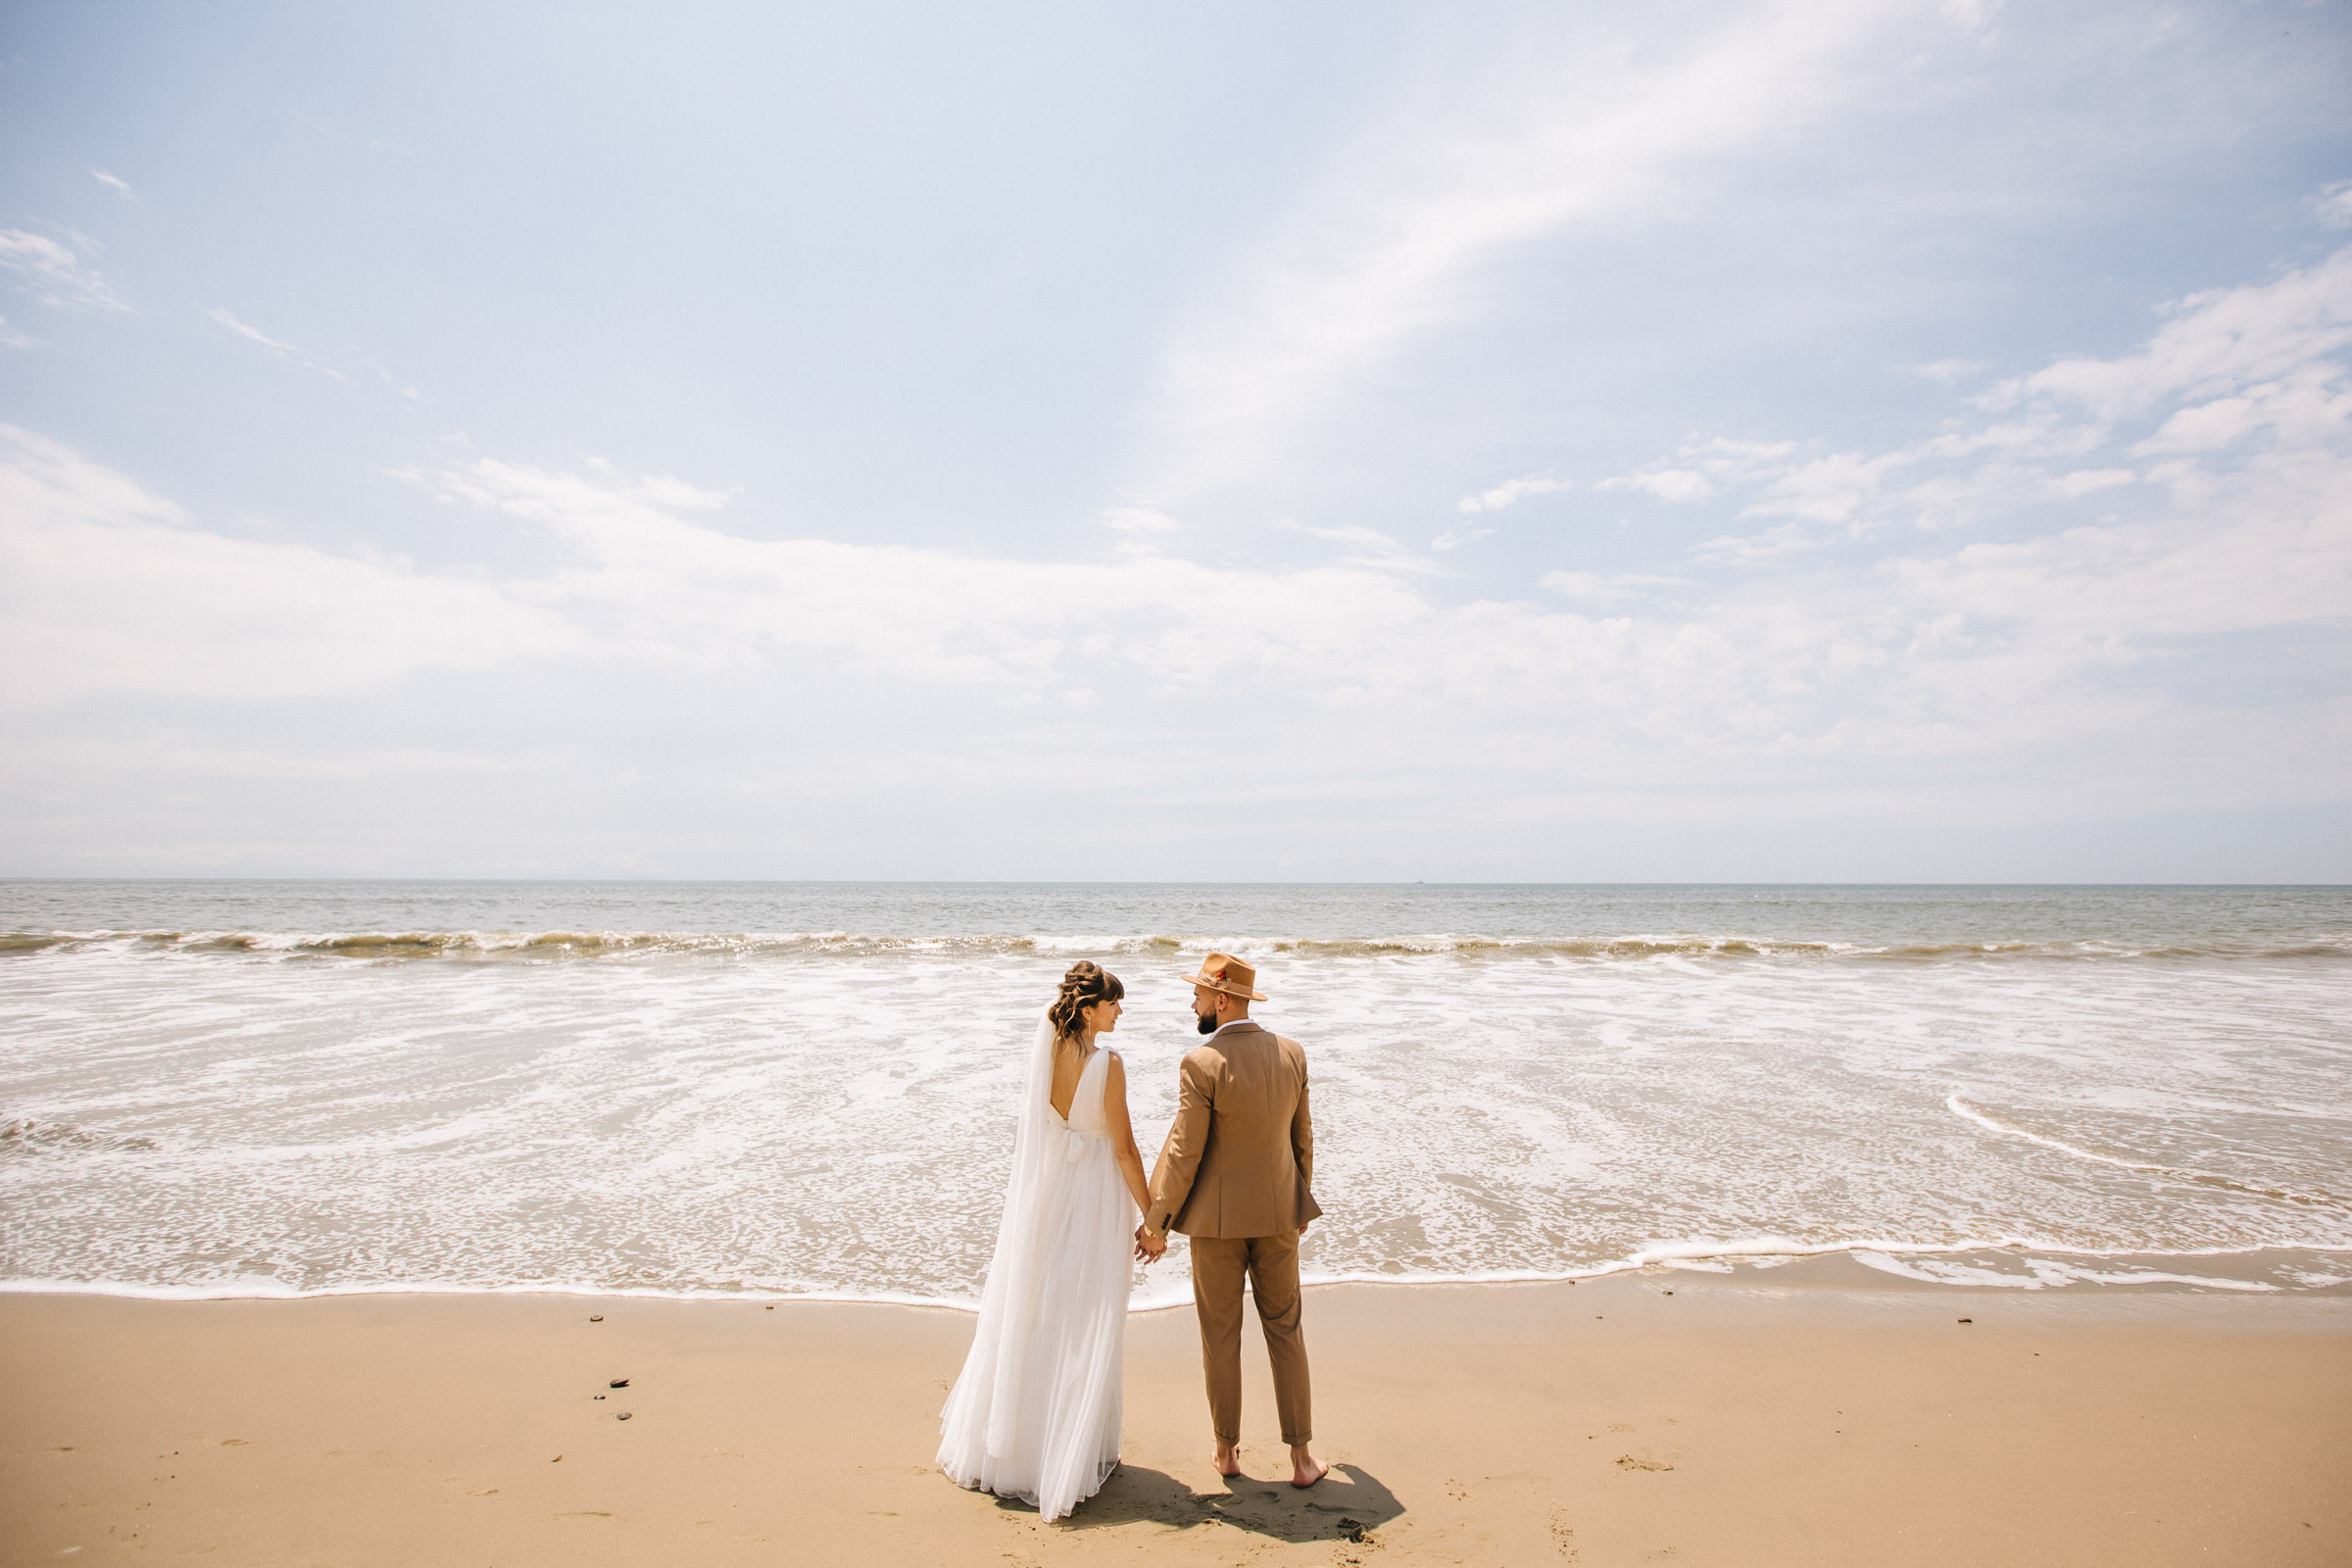 Romantic wedding photo of the bride and